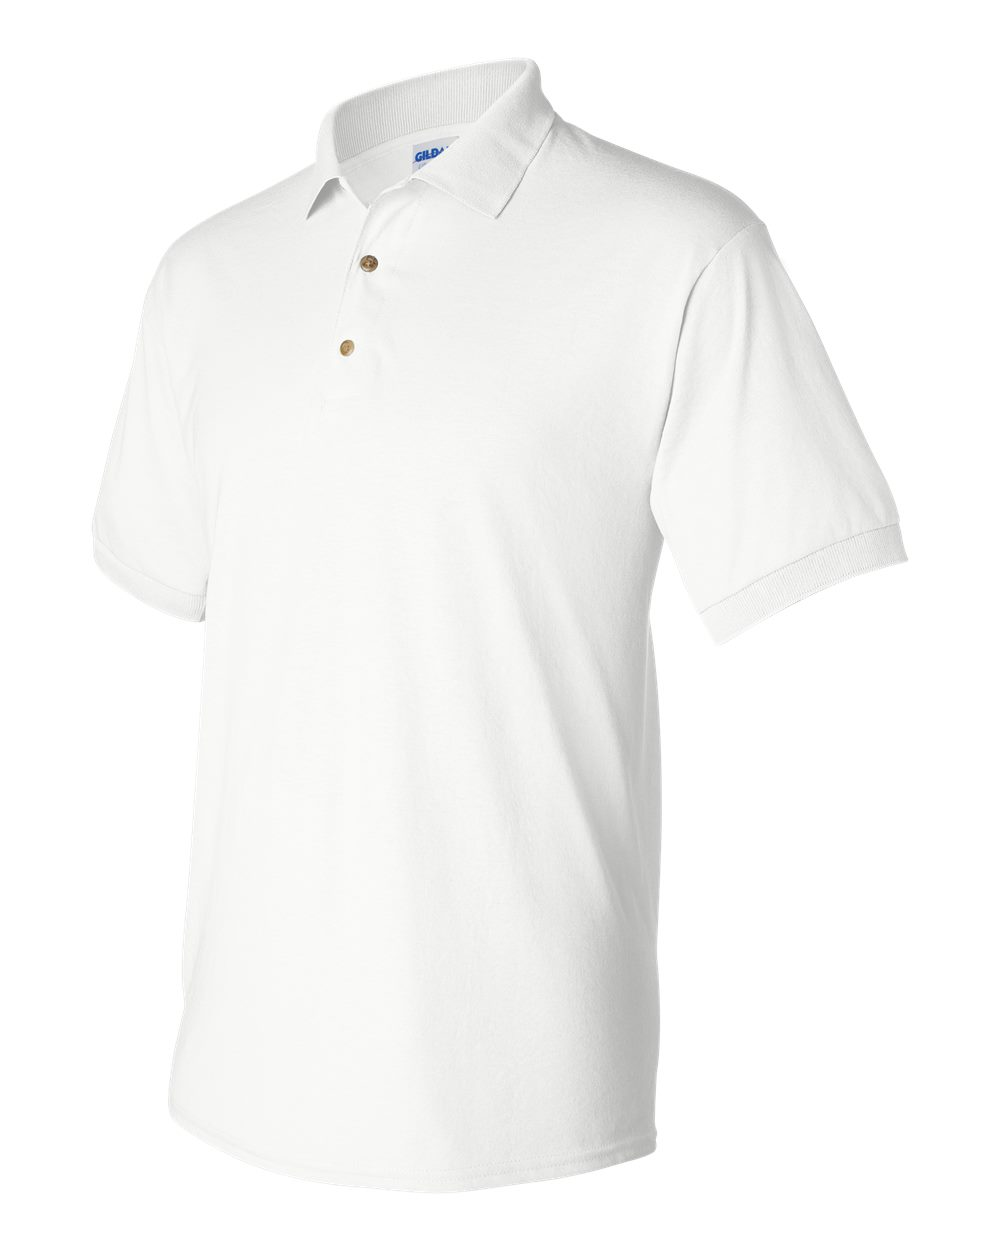 Southeast White Polo